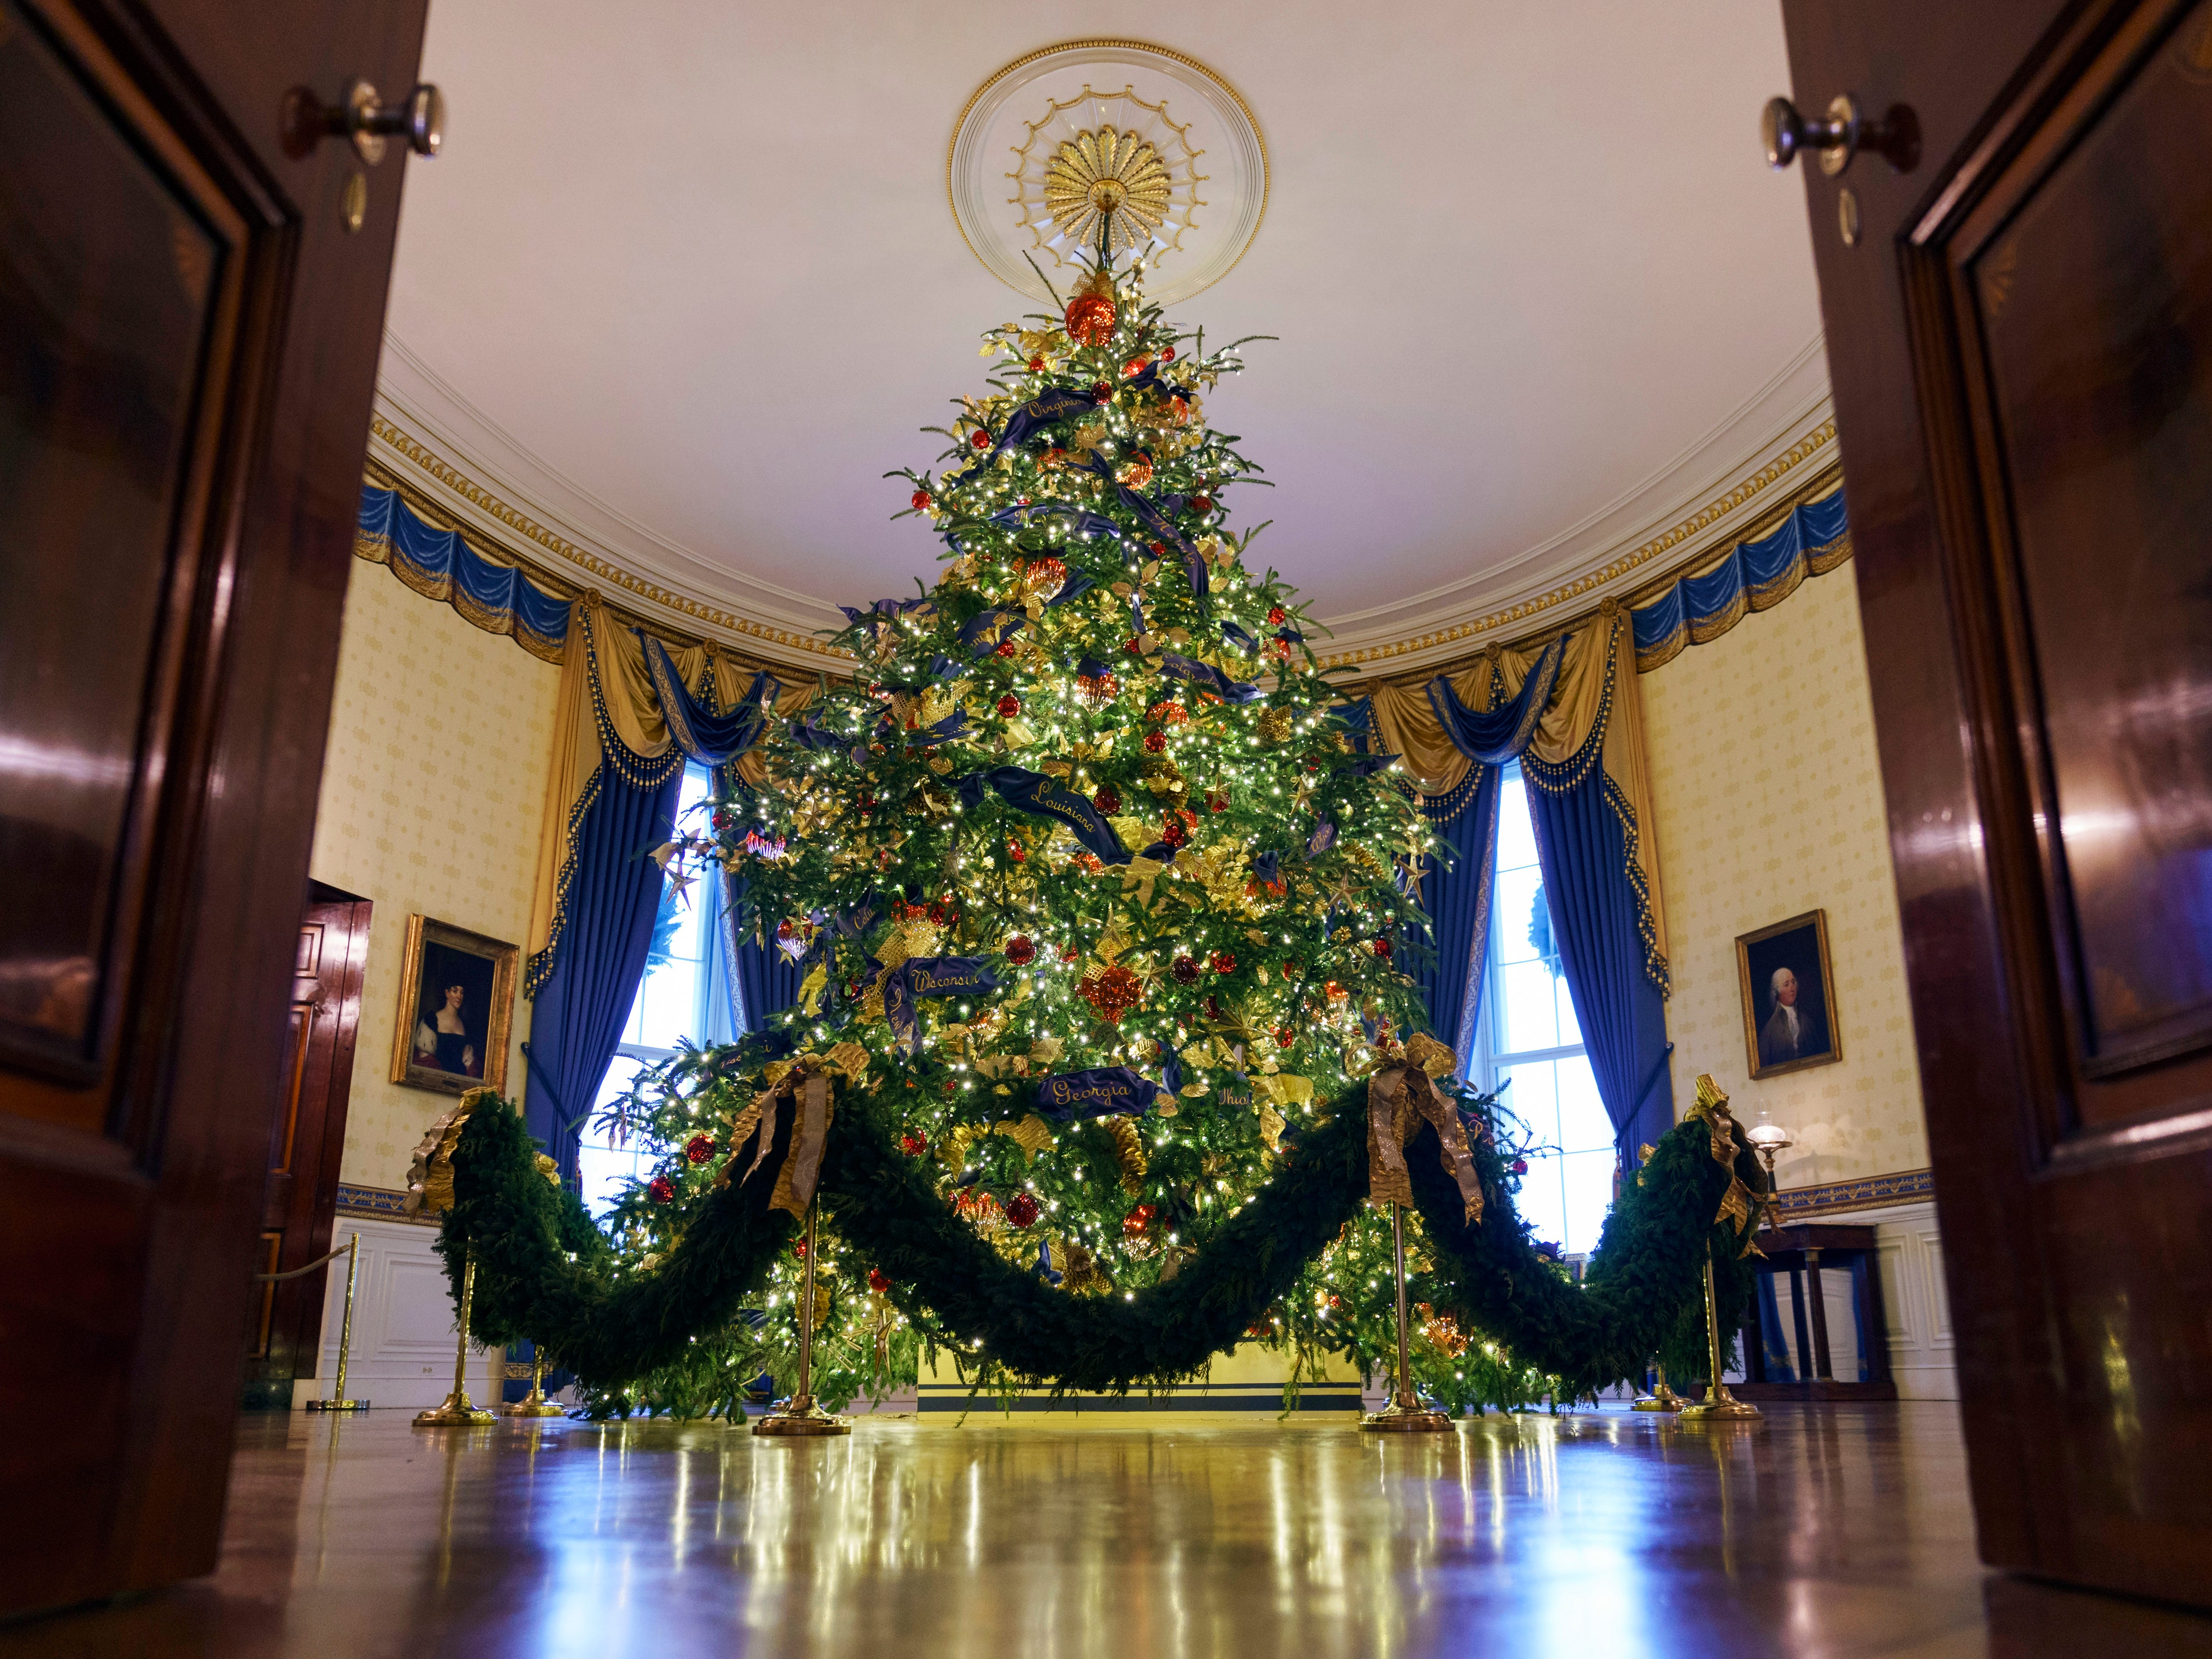 The official White House Christmas tree - a Fraser fir from Newland, North Carolina - is seen in the Blue Room on Nov. 26, 2018.